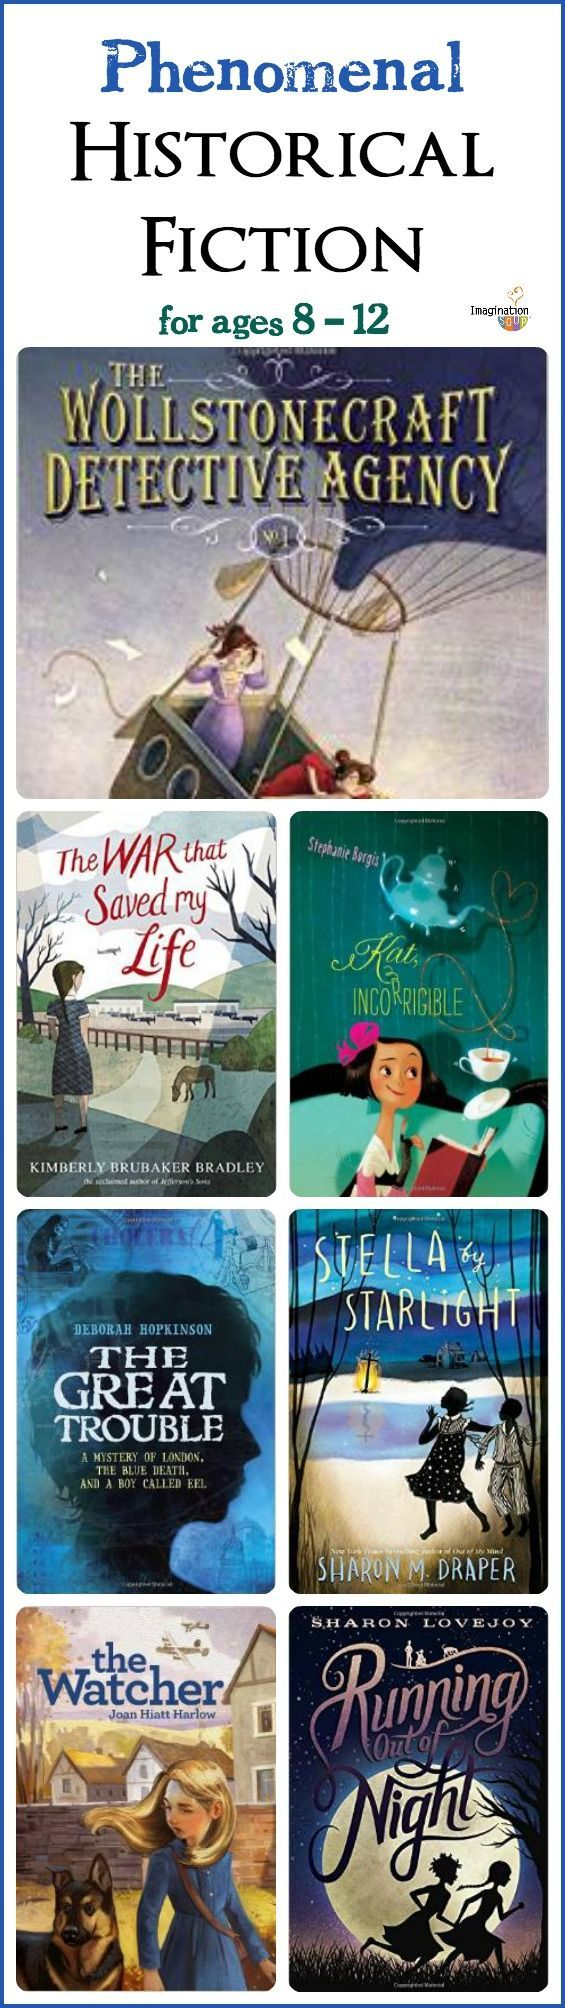 heart-tugging, can't-stop-reading, phenomenal historical fiction middle grade books!! LOVE these! Great short description of each book makes it easy to choose which ones you need!